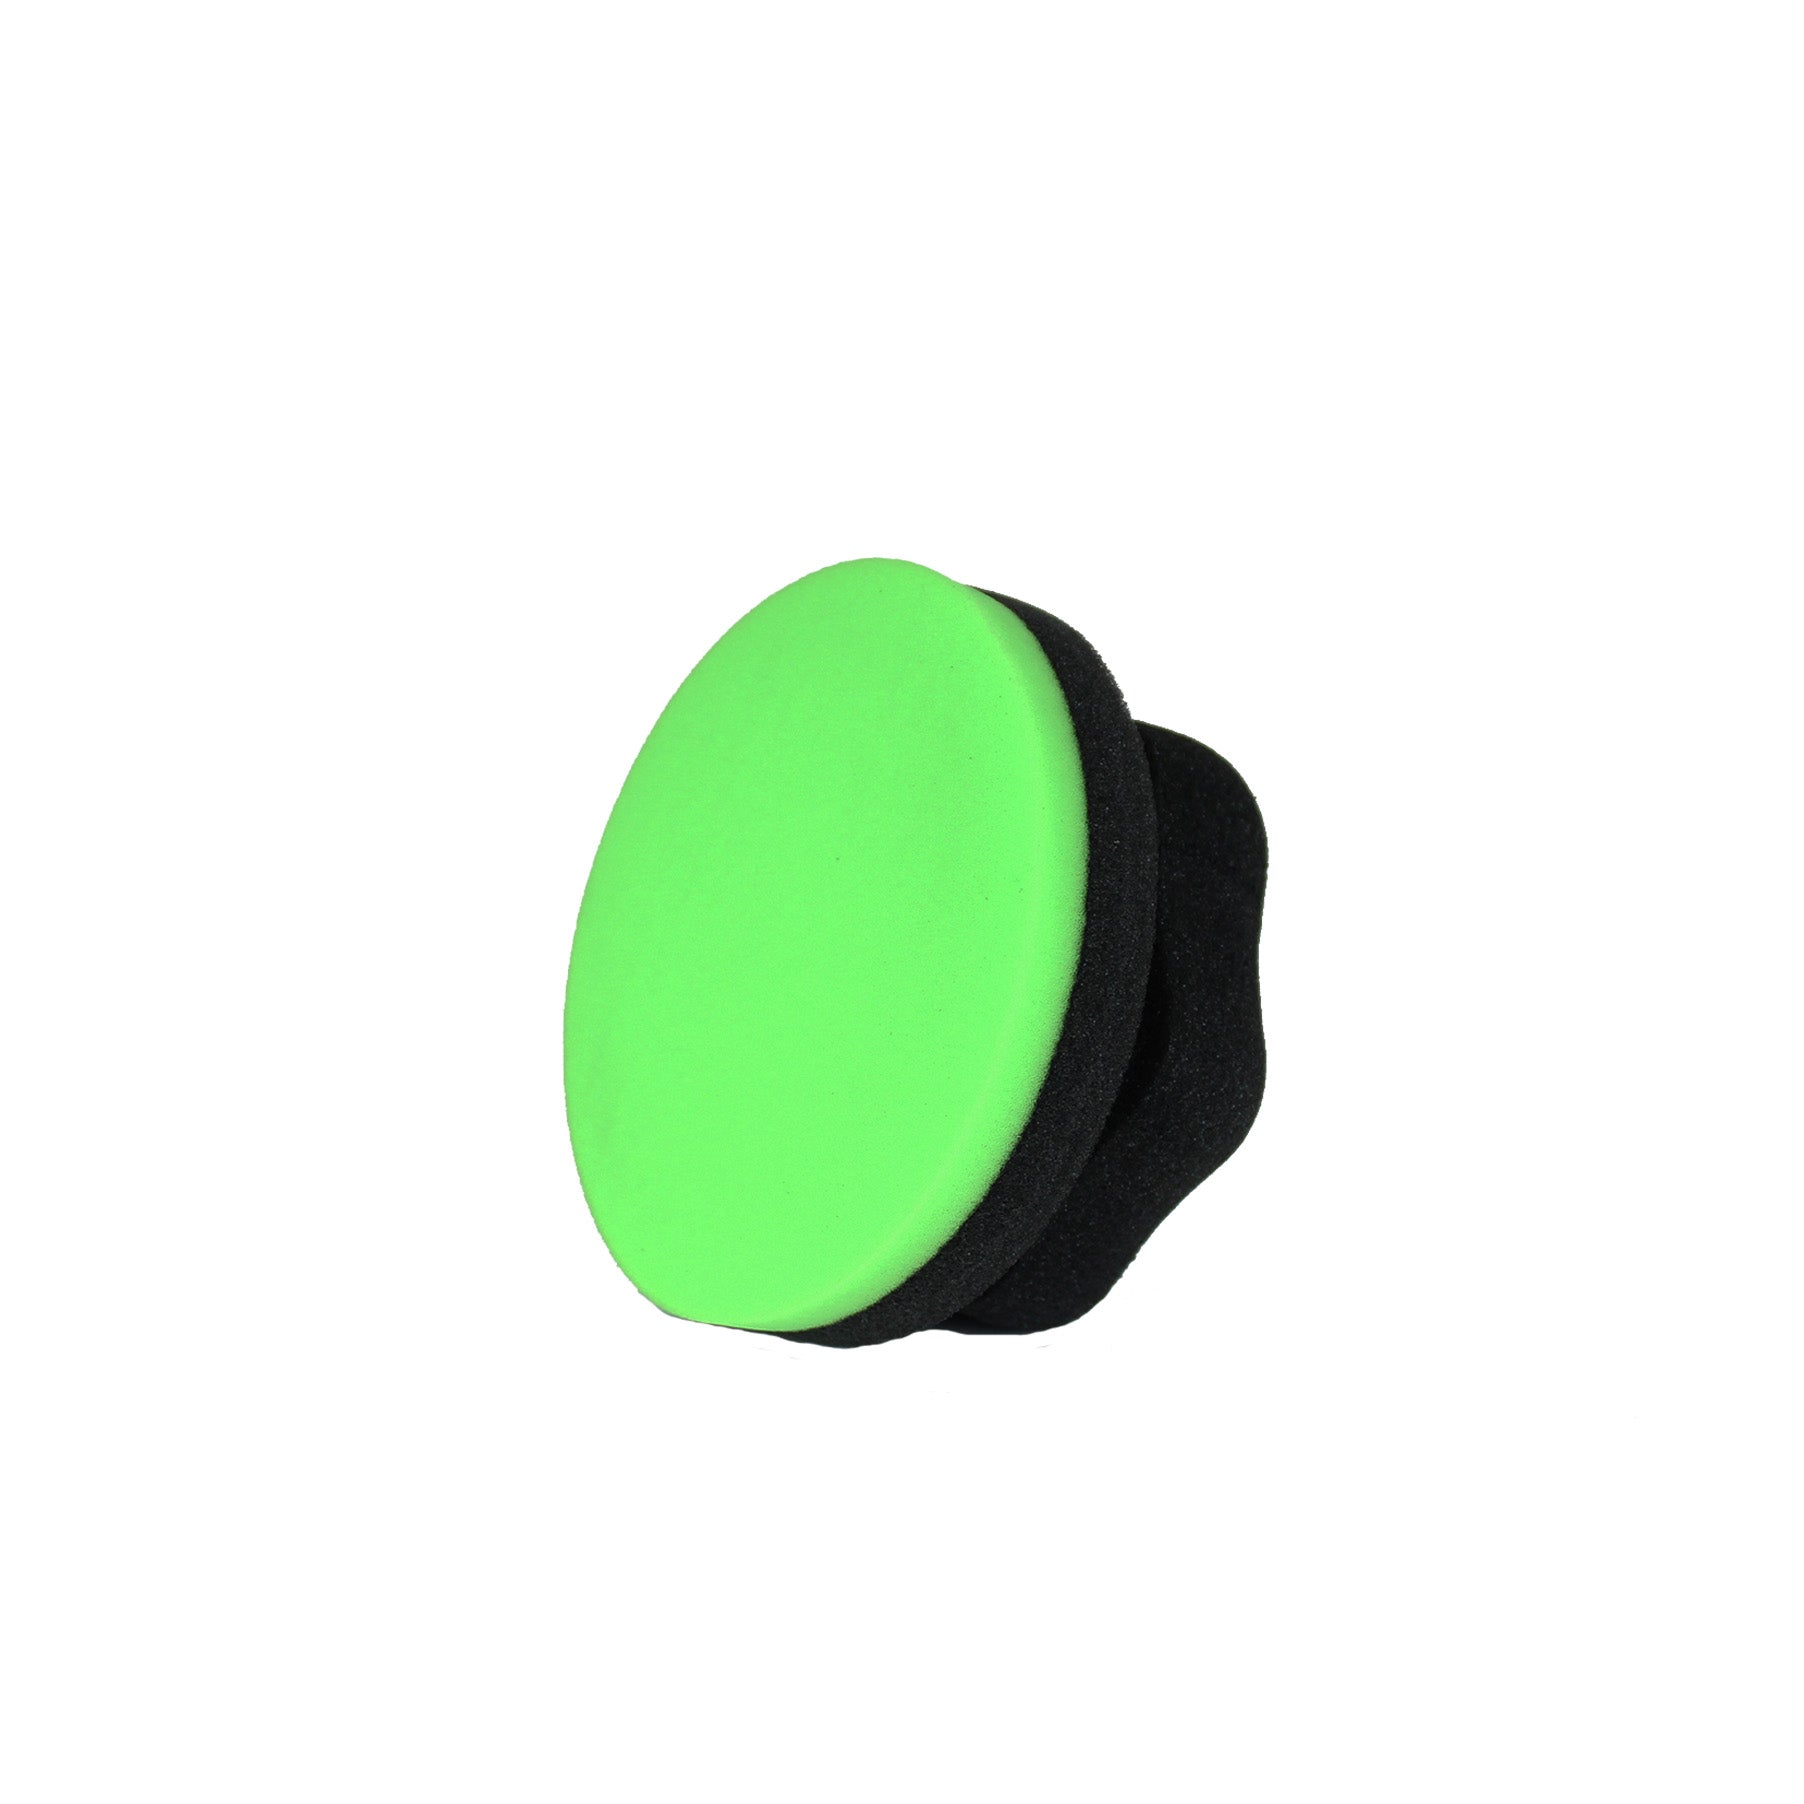 Hex Grip Wax Applicator